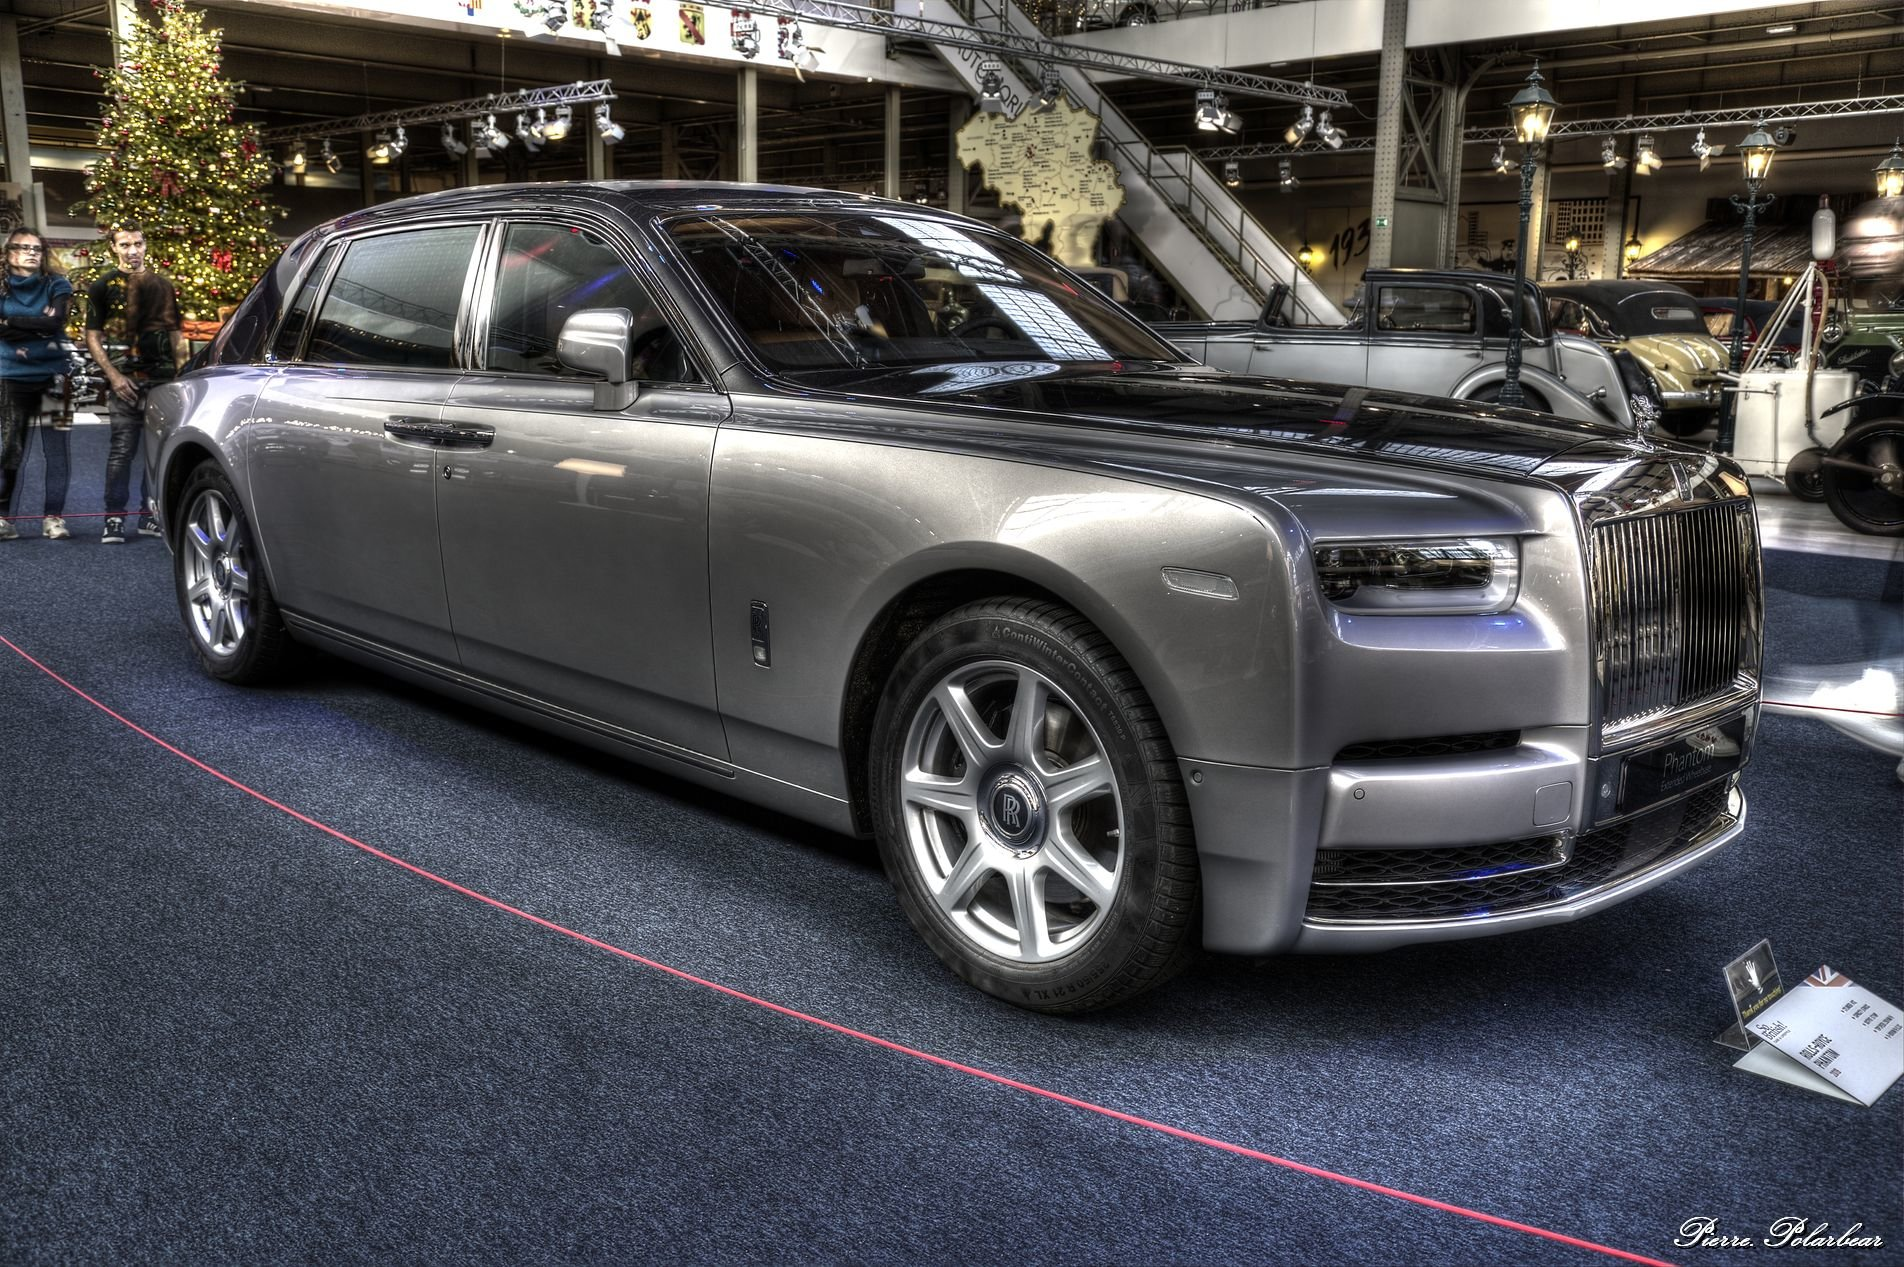 2019-Rolls-Royce-Phantom-03